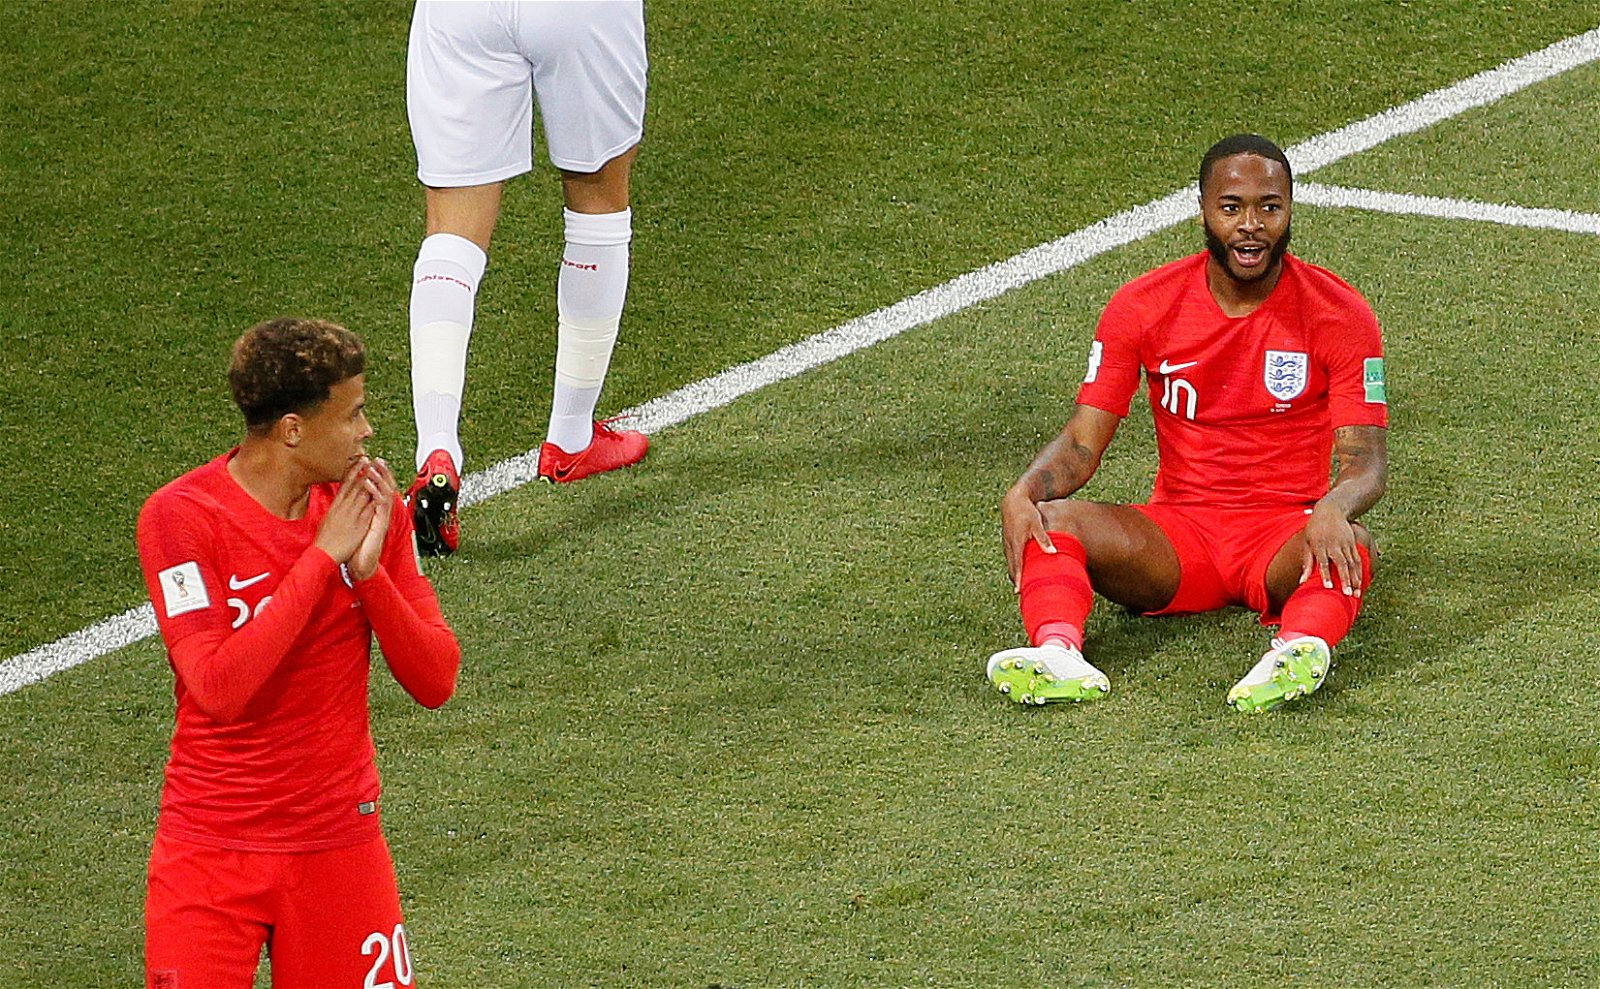 Raheem Sterling looks perplexed after missing an early chance for England